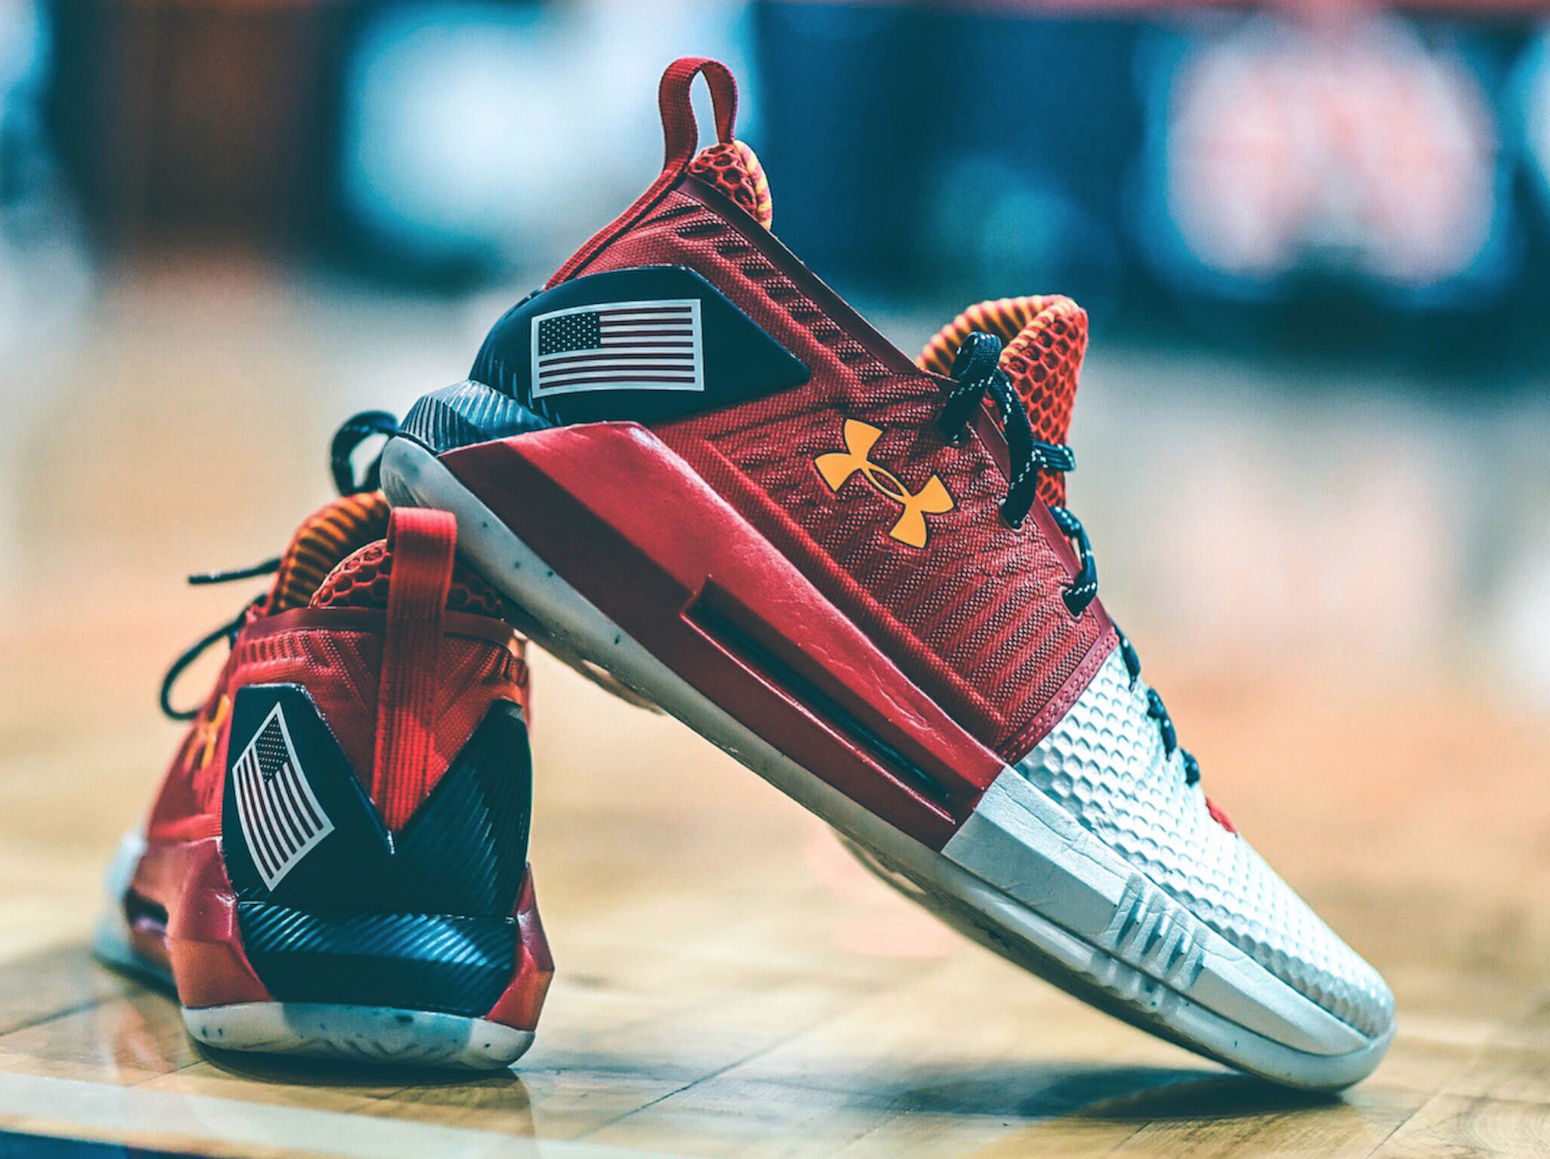 The Under Armour Drive 4 Low 'Veteran's